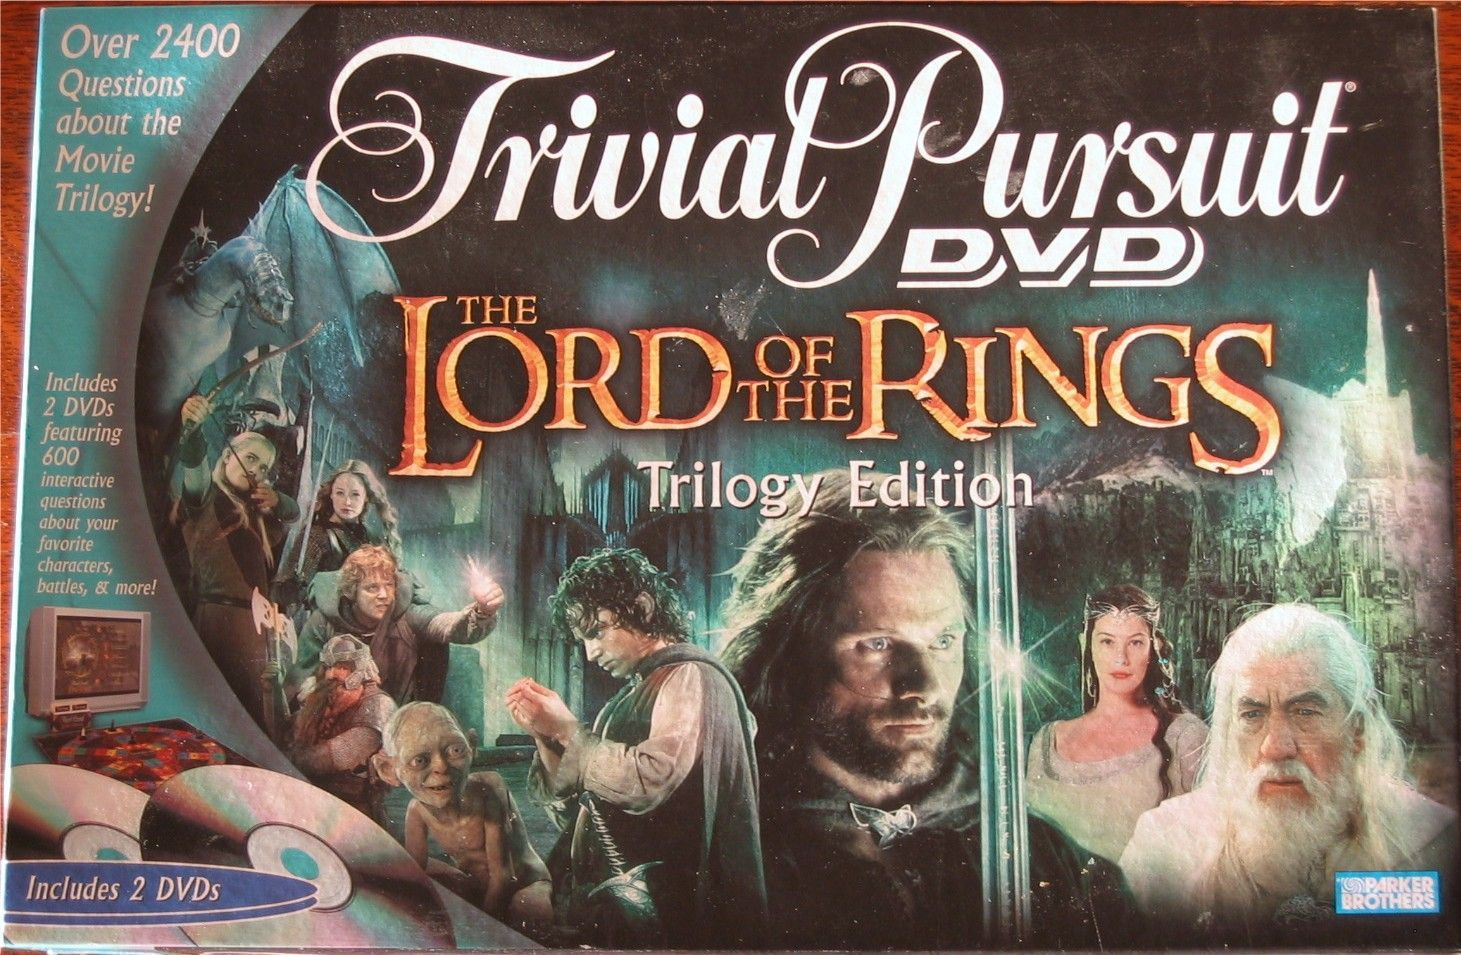 Trivial Pursuit: DVD – The Lord Of The Rings Trilogy Edition